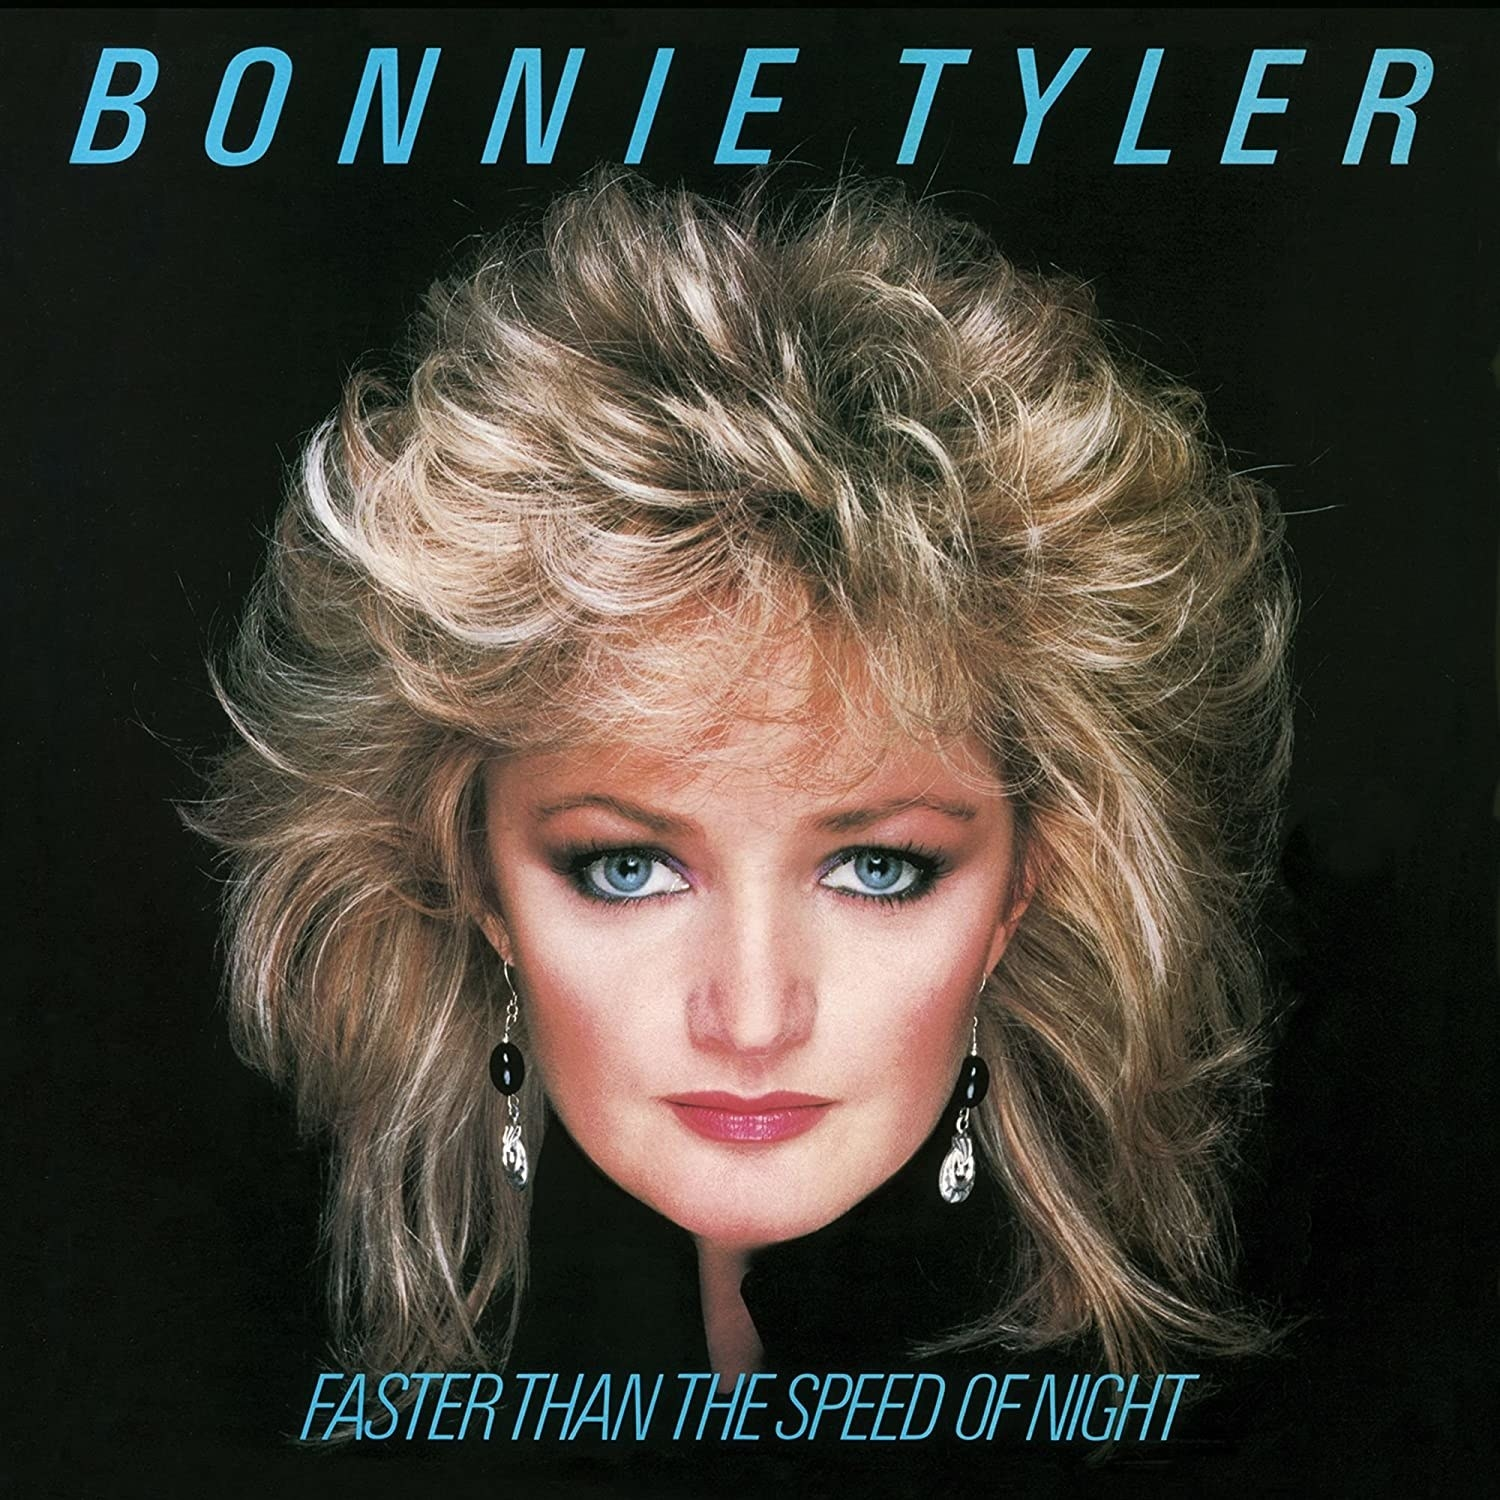 album cover of Faster Than The Speed of Night showing Bonnie Tyler's face